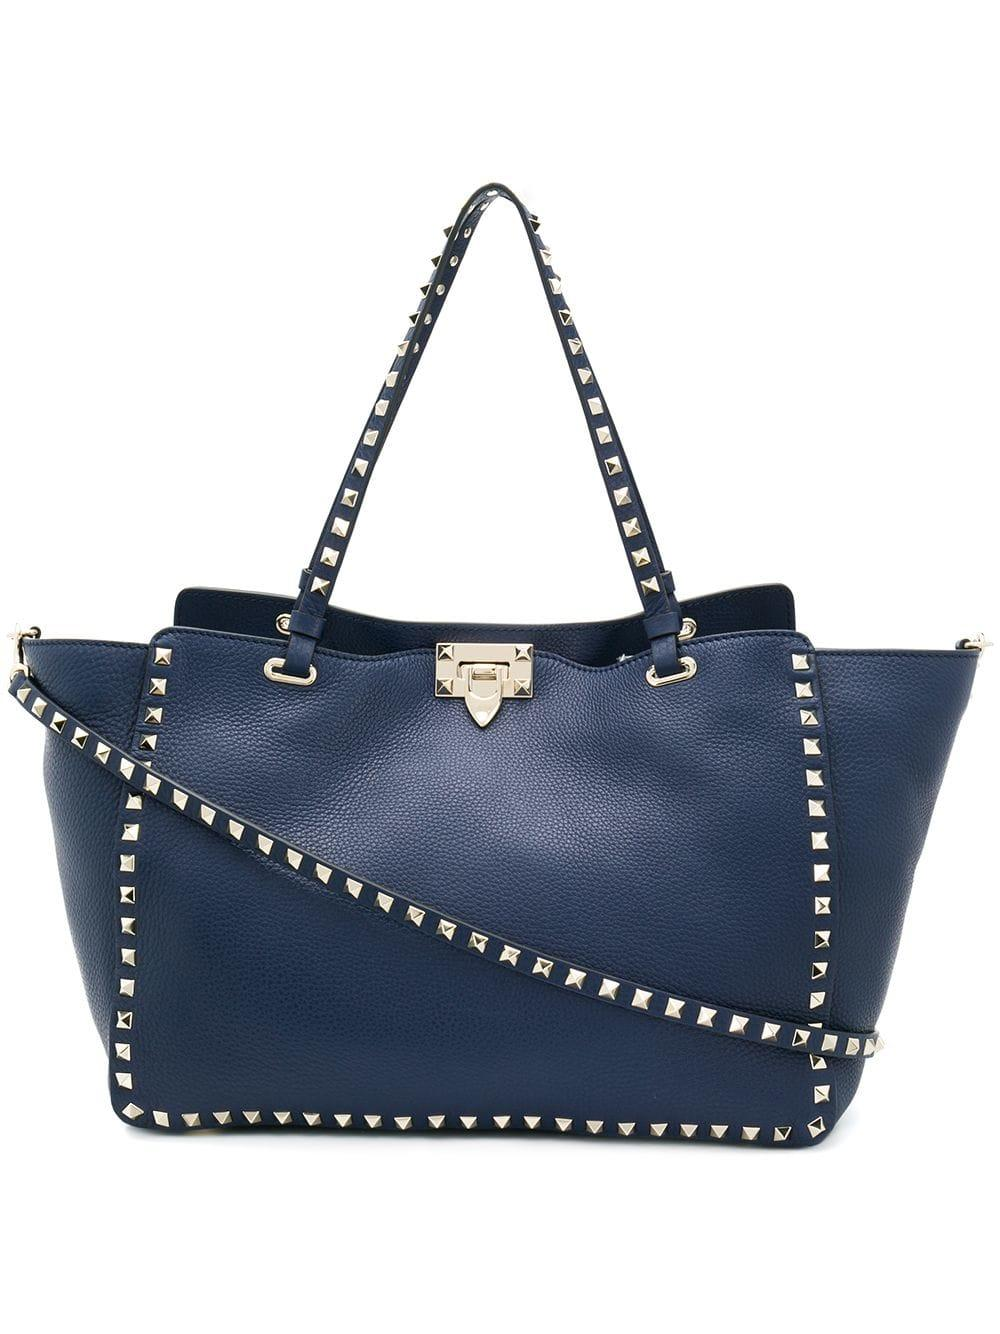 0f190a06b0abc Lyst - Valentino Rockstud Leather Tote Bag in Blue - Save 20%